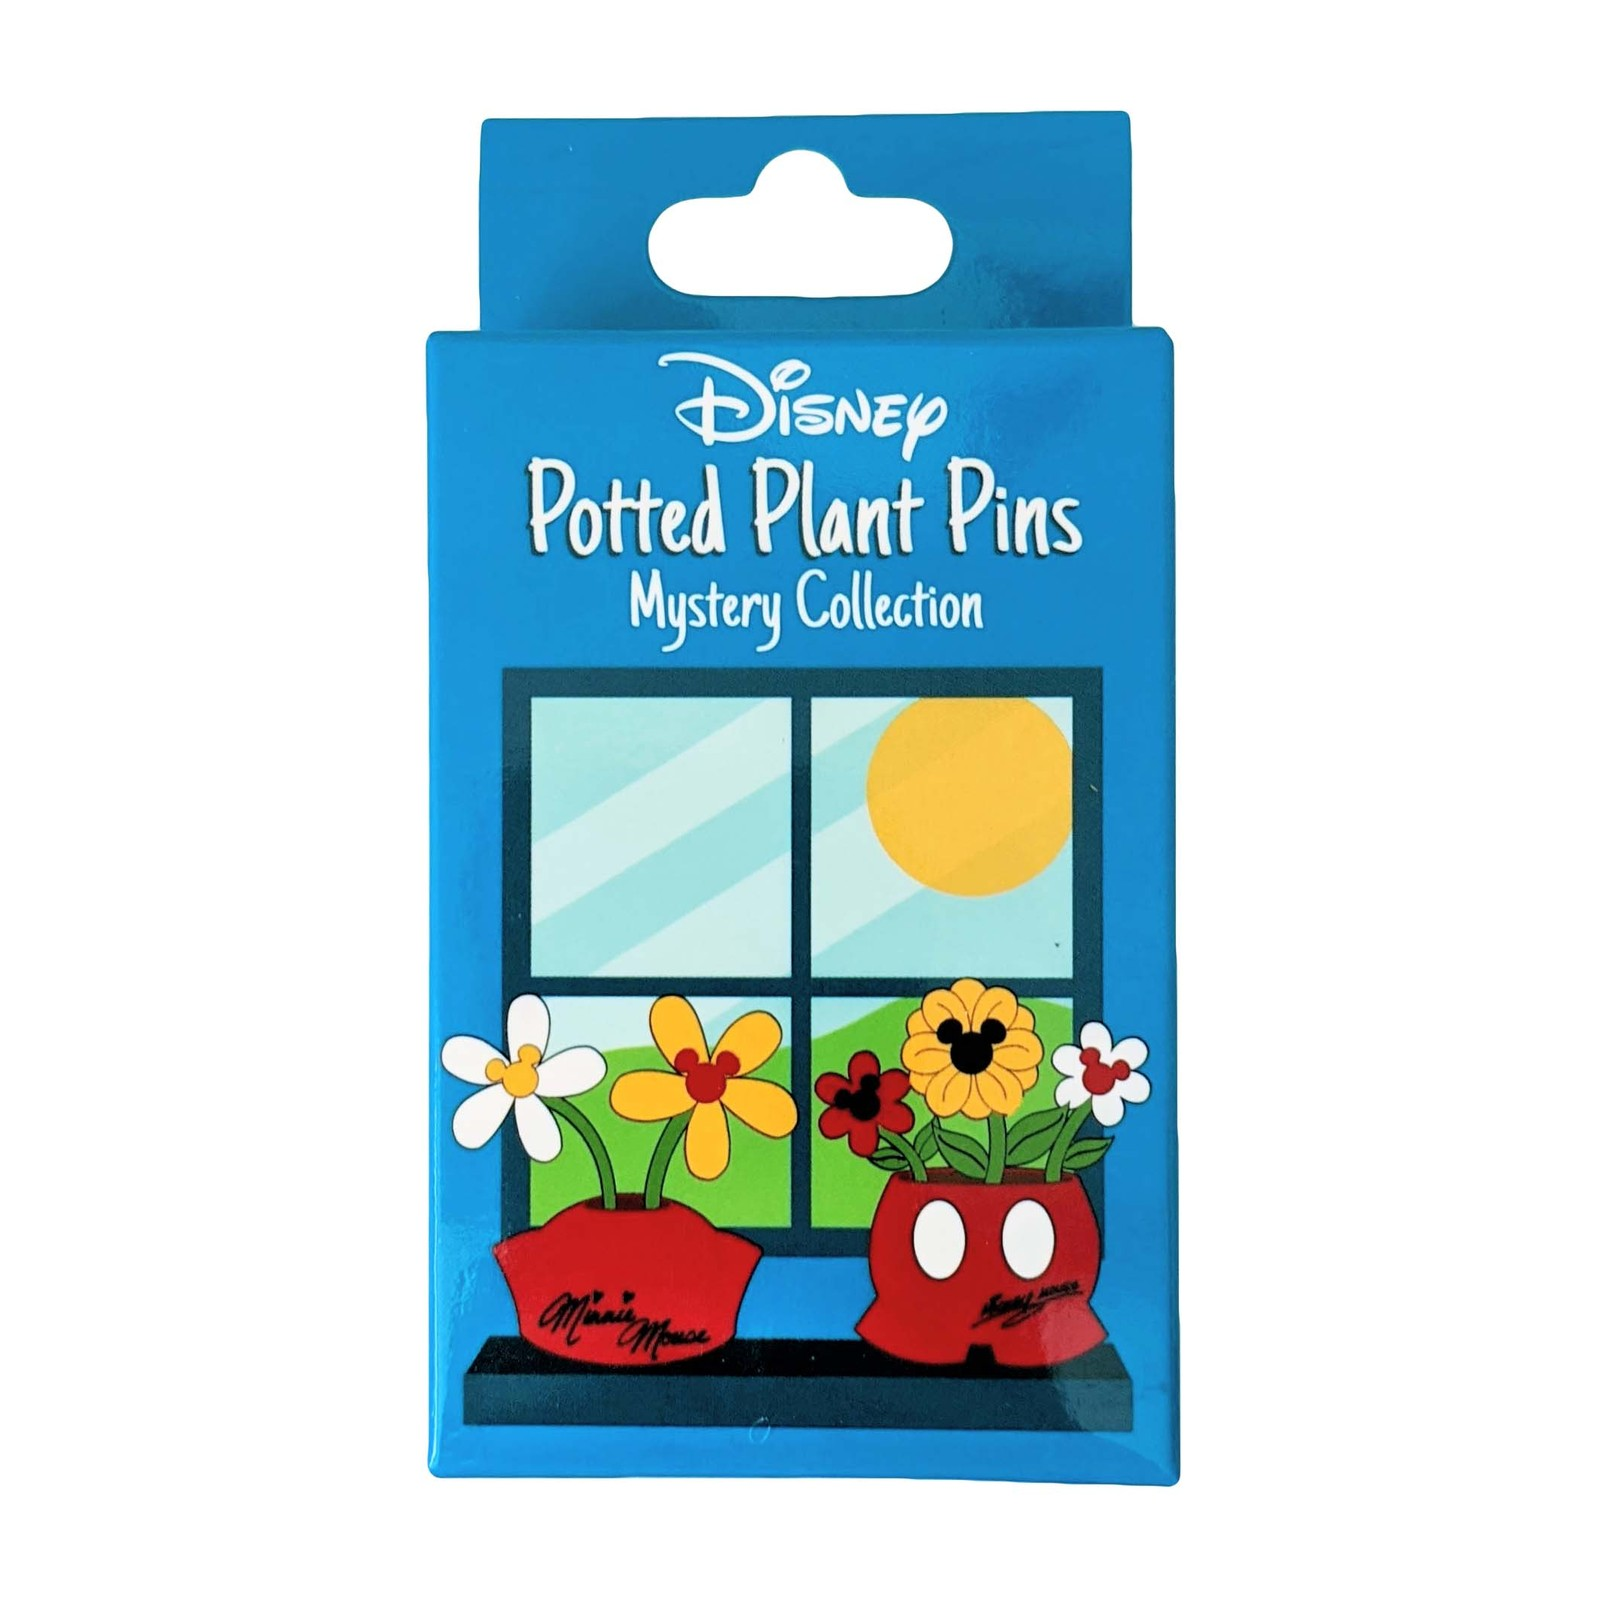 Primary image for Disney Potted Plants Mystery Pins: Box Only (1)